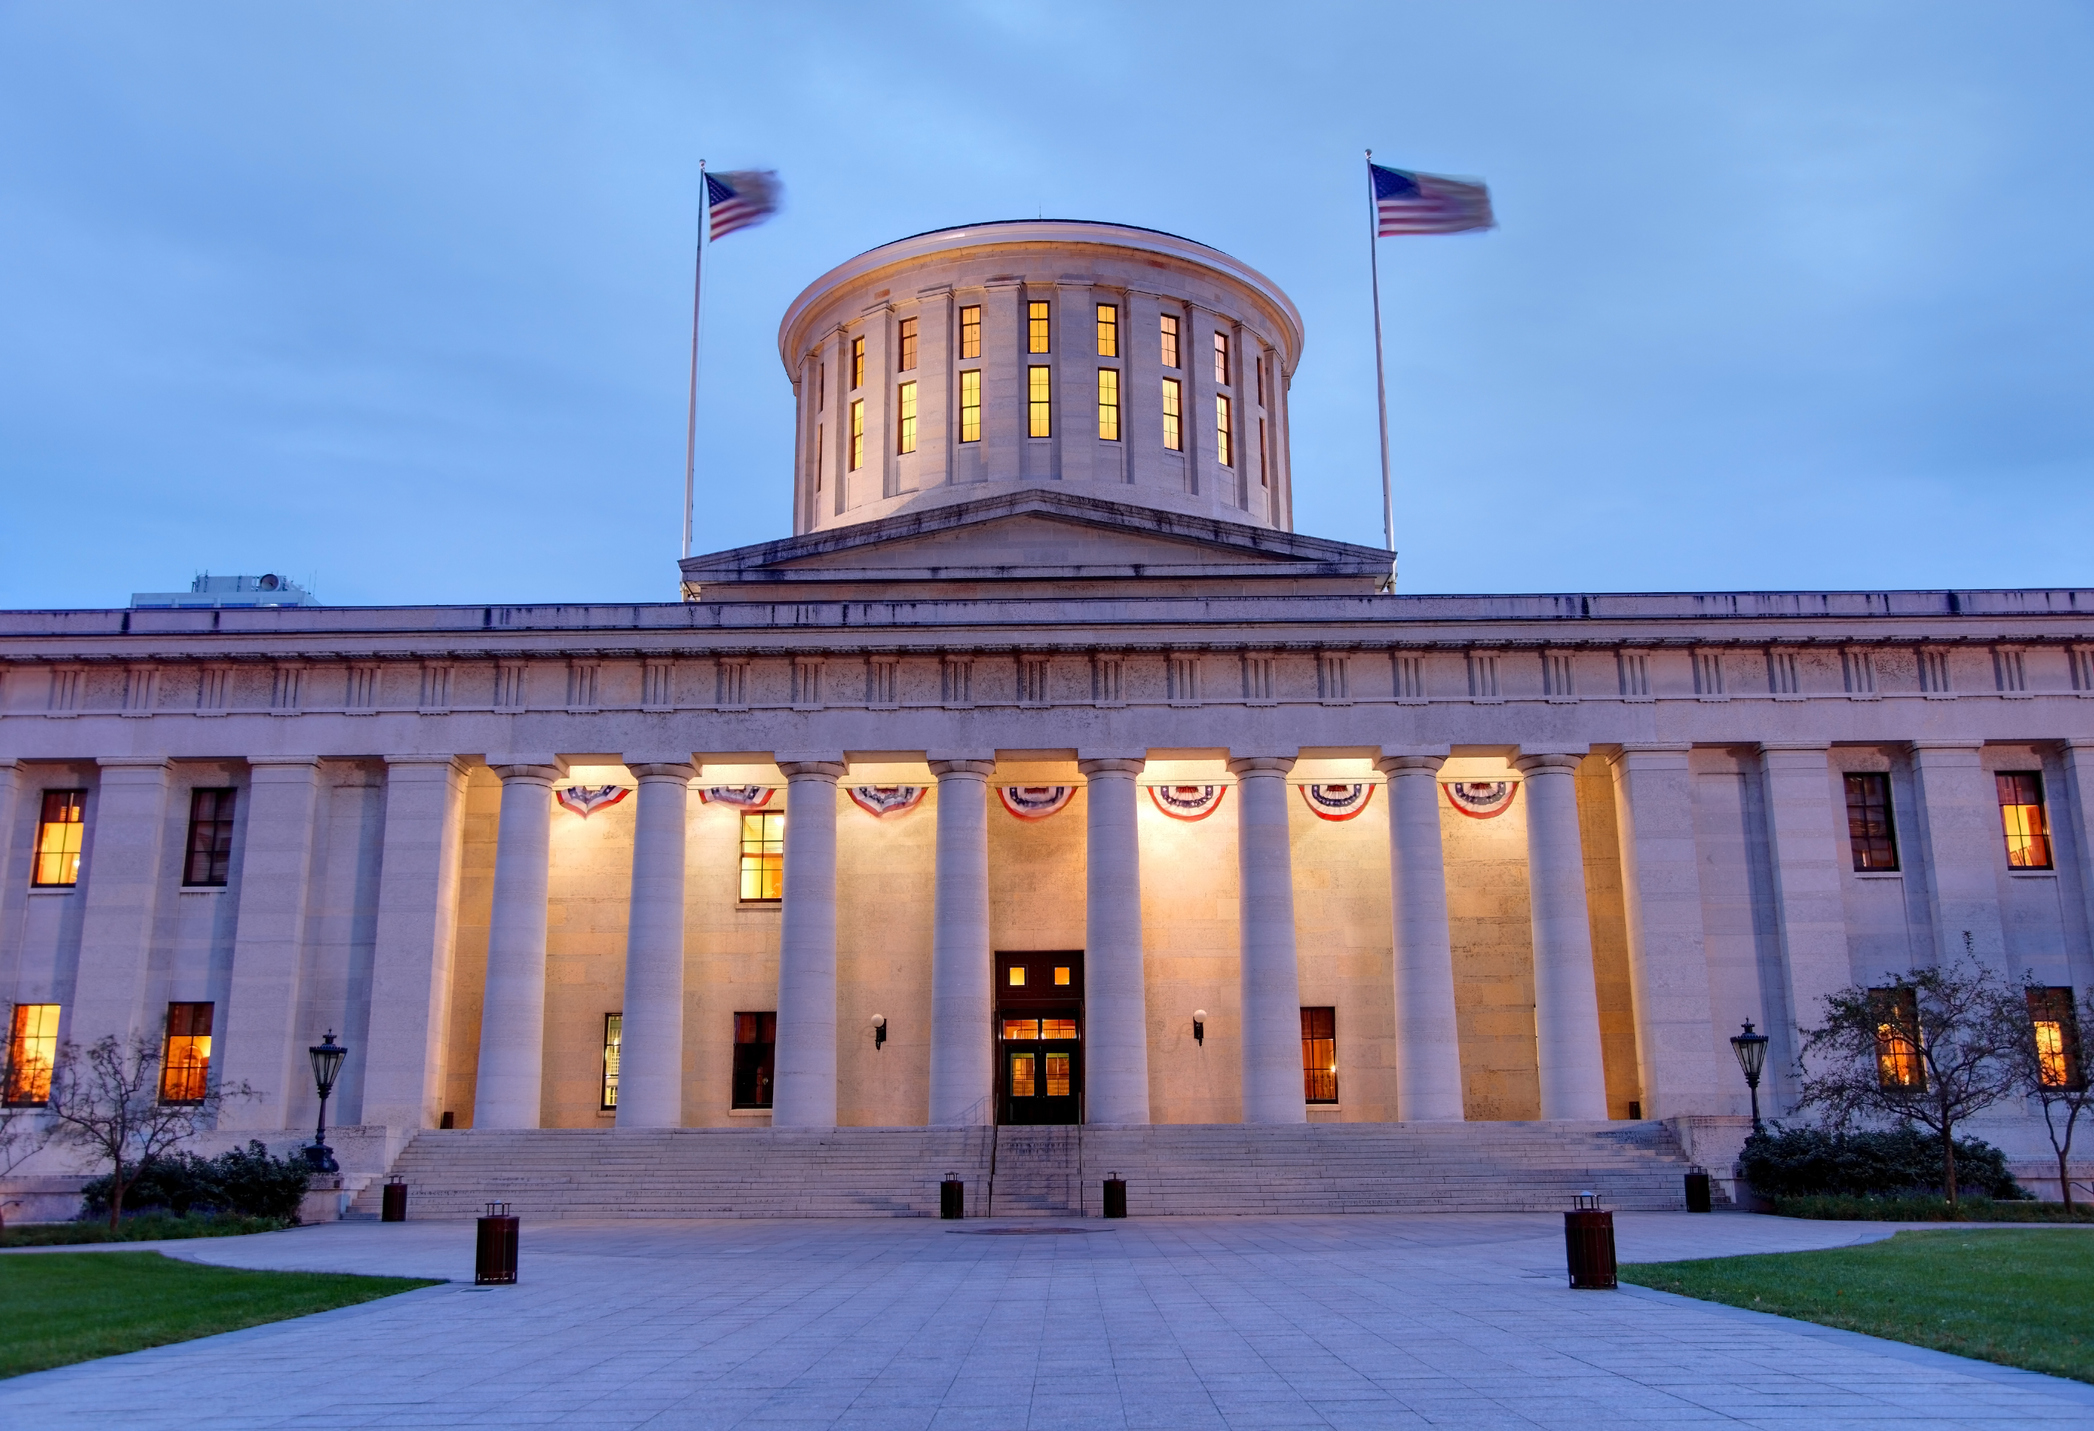 The Ohio Statehouse, located in Columbus, Ohio, is the house of government for the state of Ohio